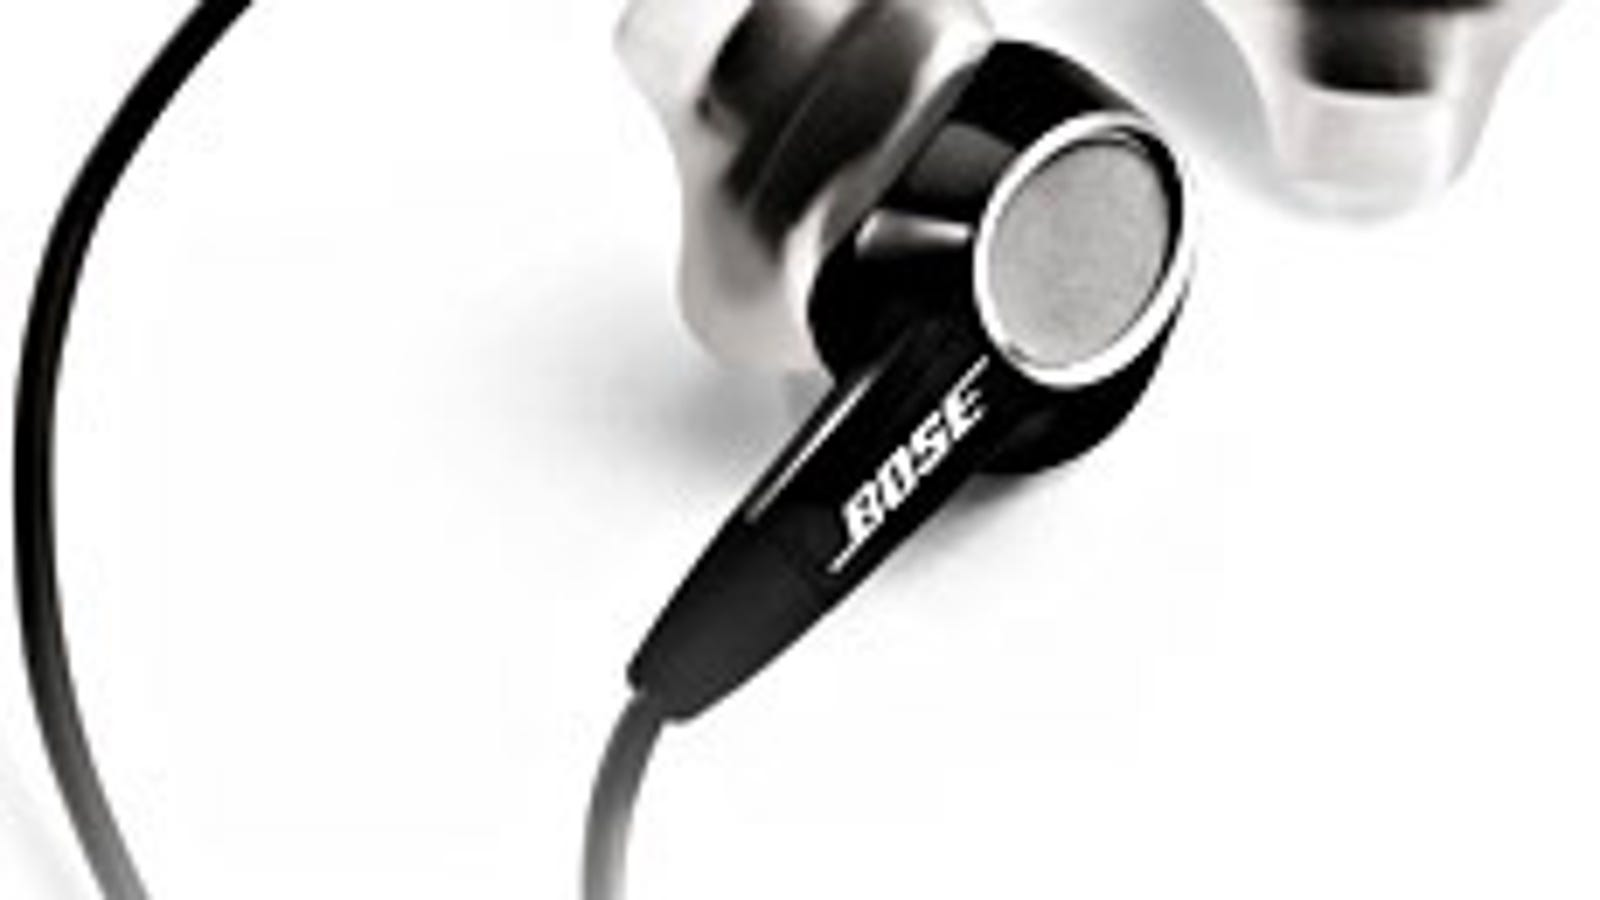 Bose Taking its TriPort Headphones Back to the Drawing Board